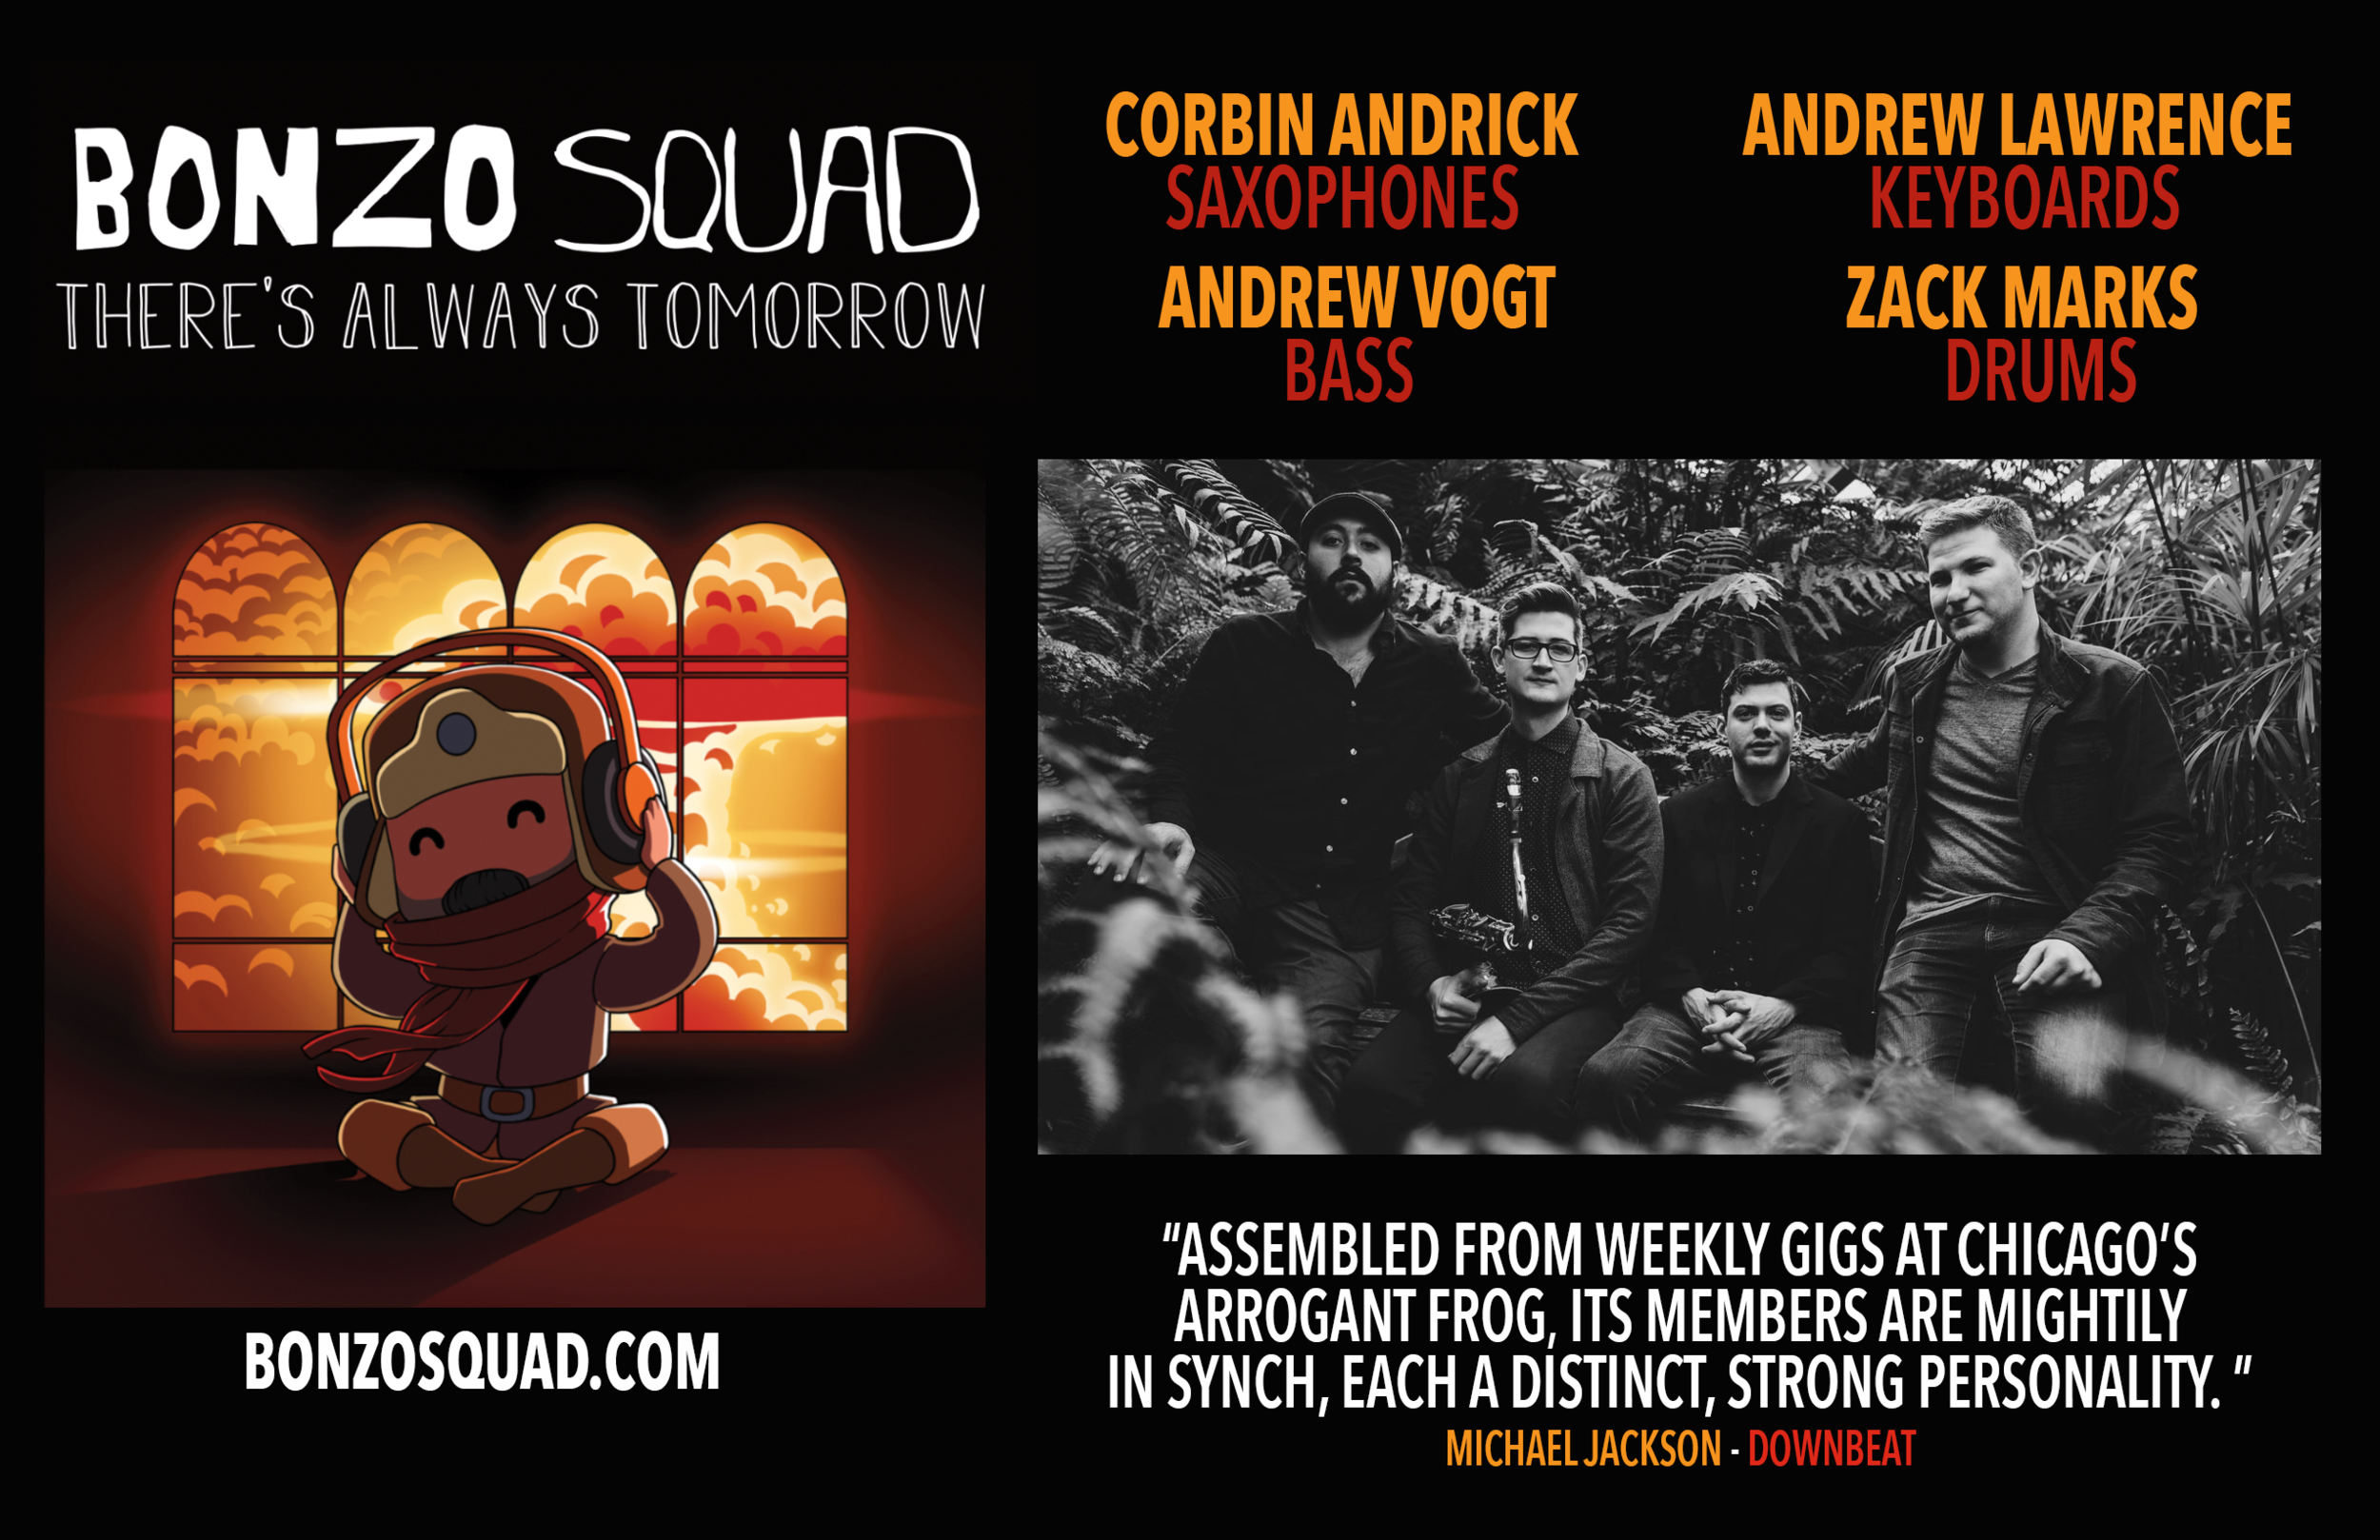 _Banner_Bonzo Squad_There's always tomorrow.png